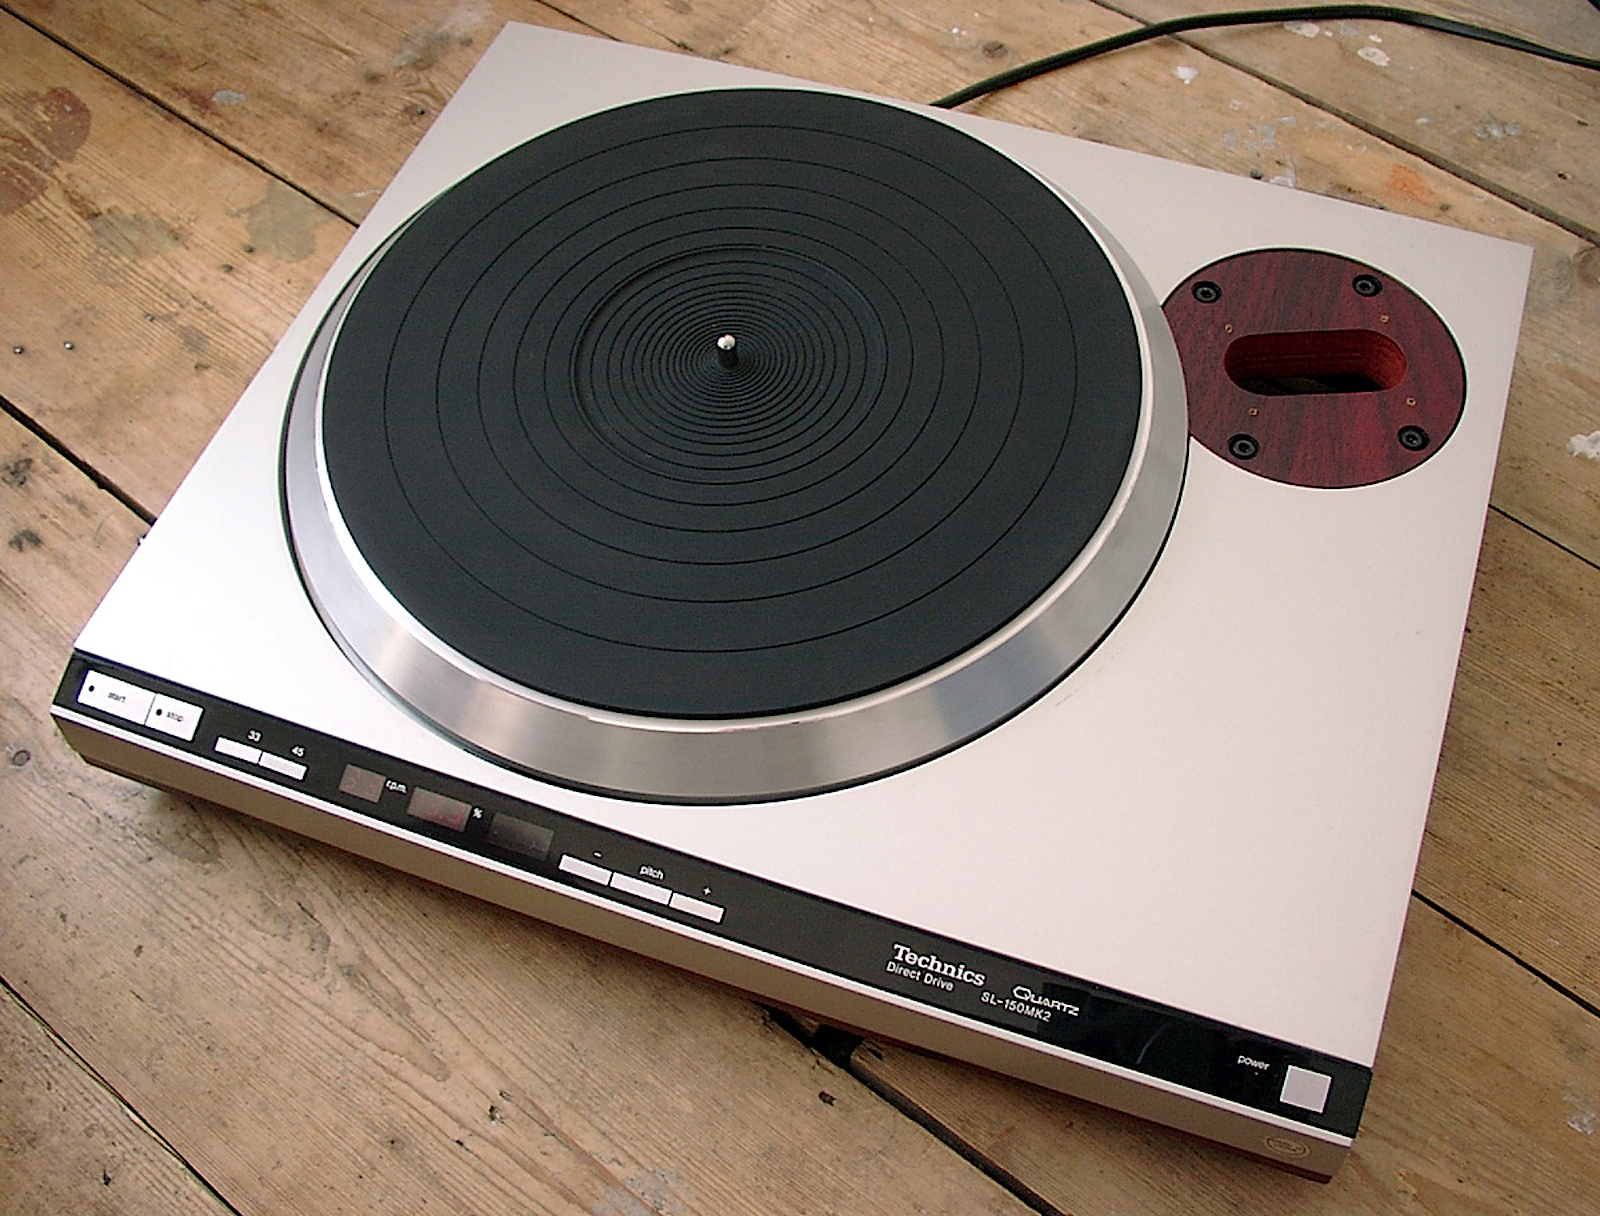 By realspin april 8 2013 turntables leave a comment